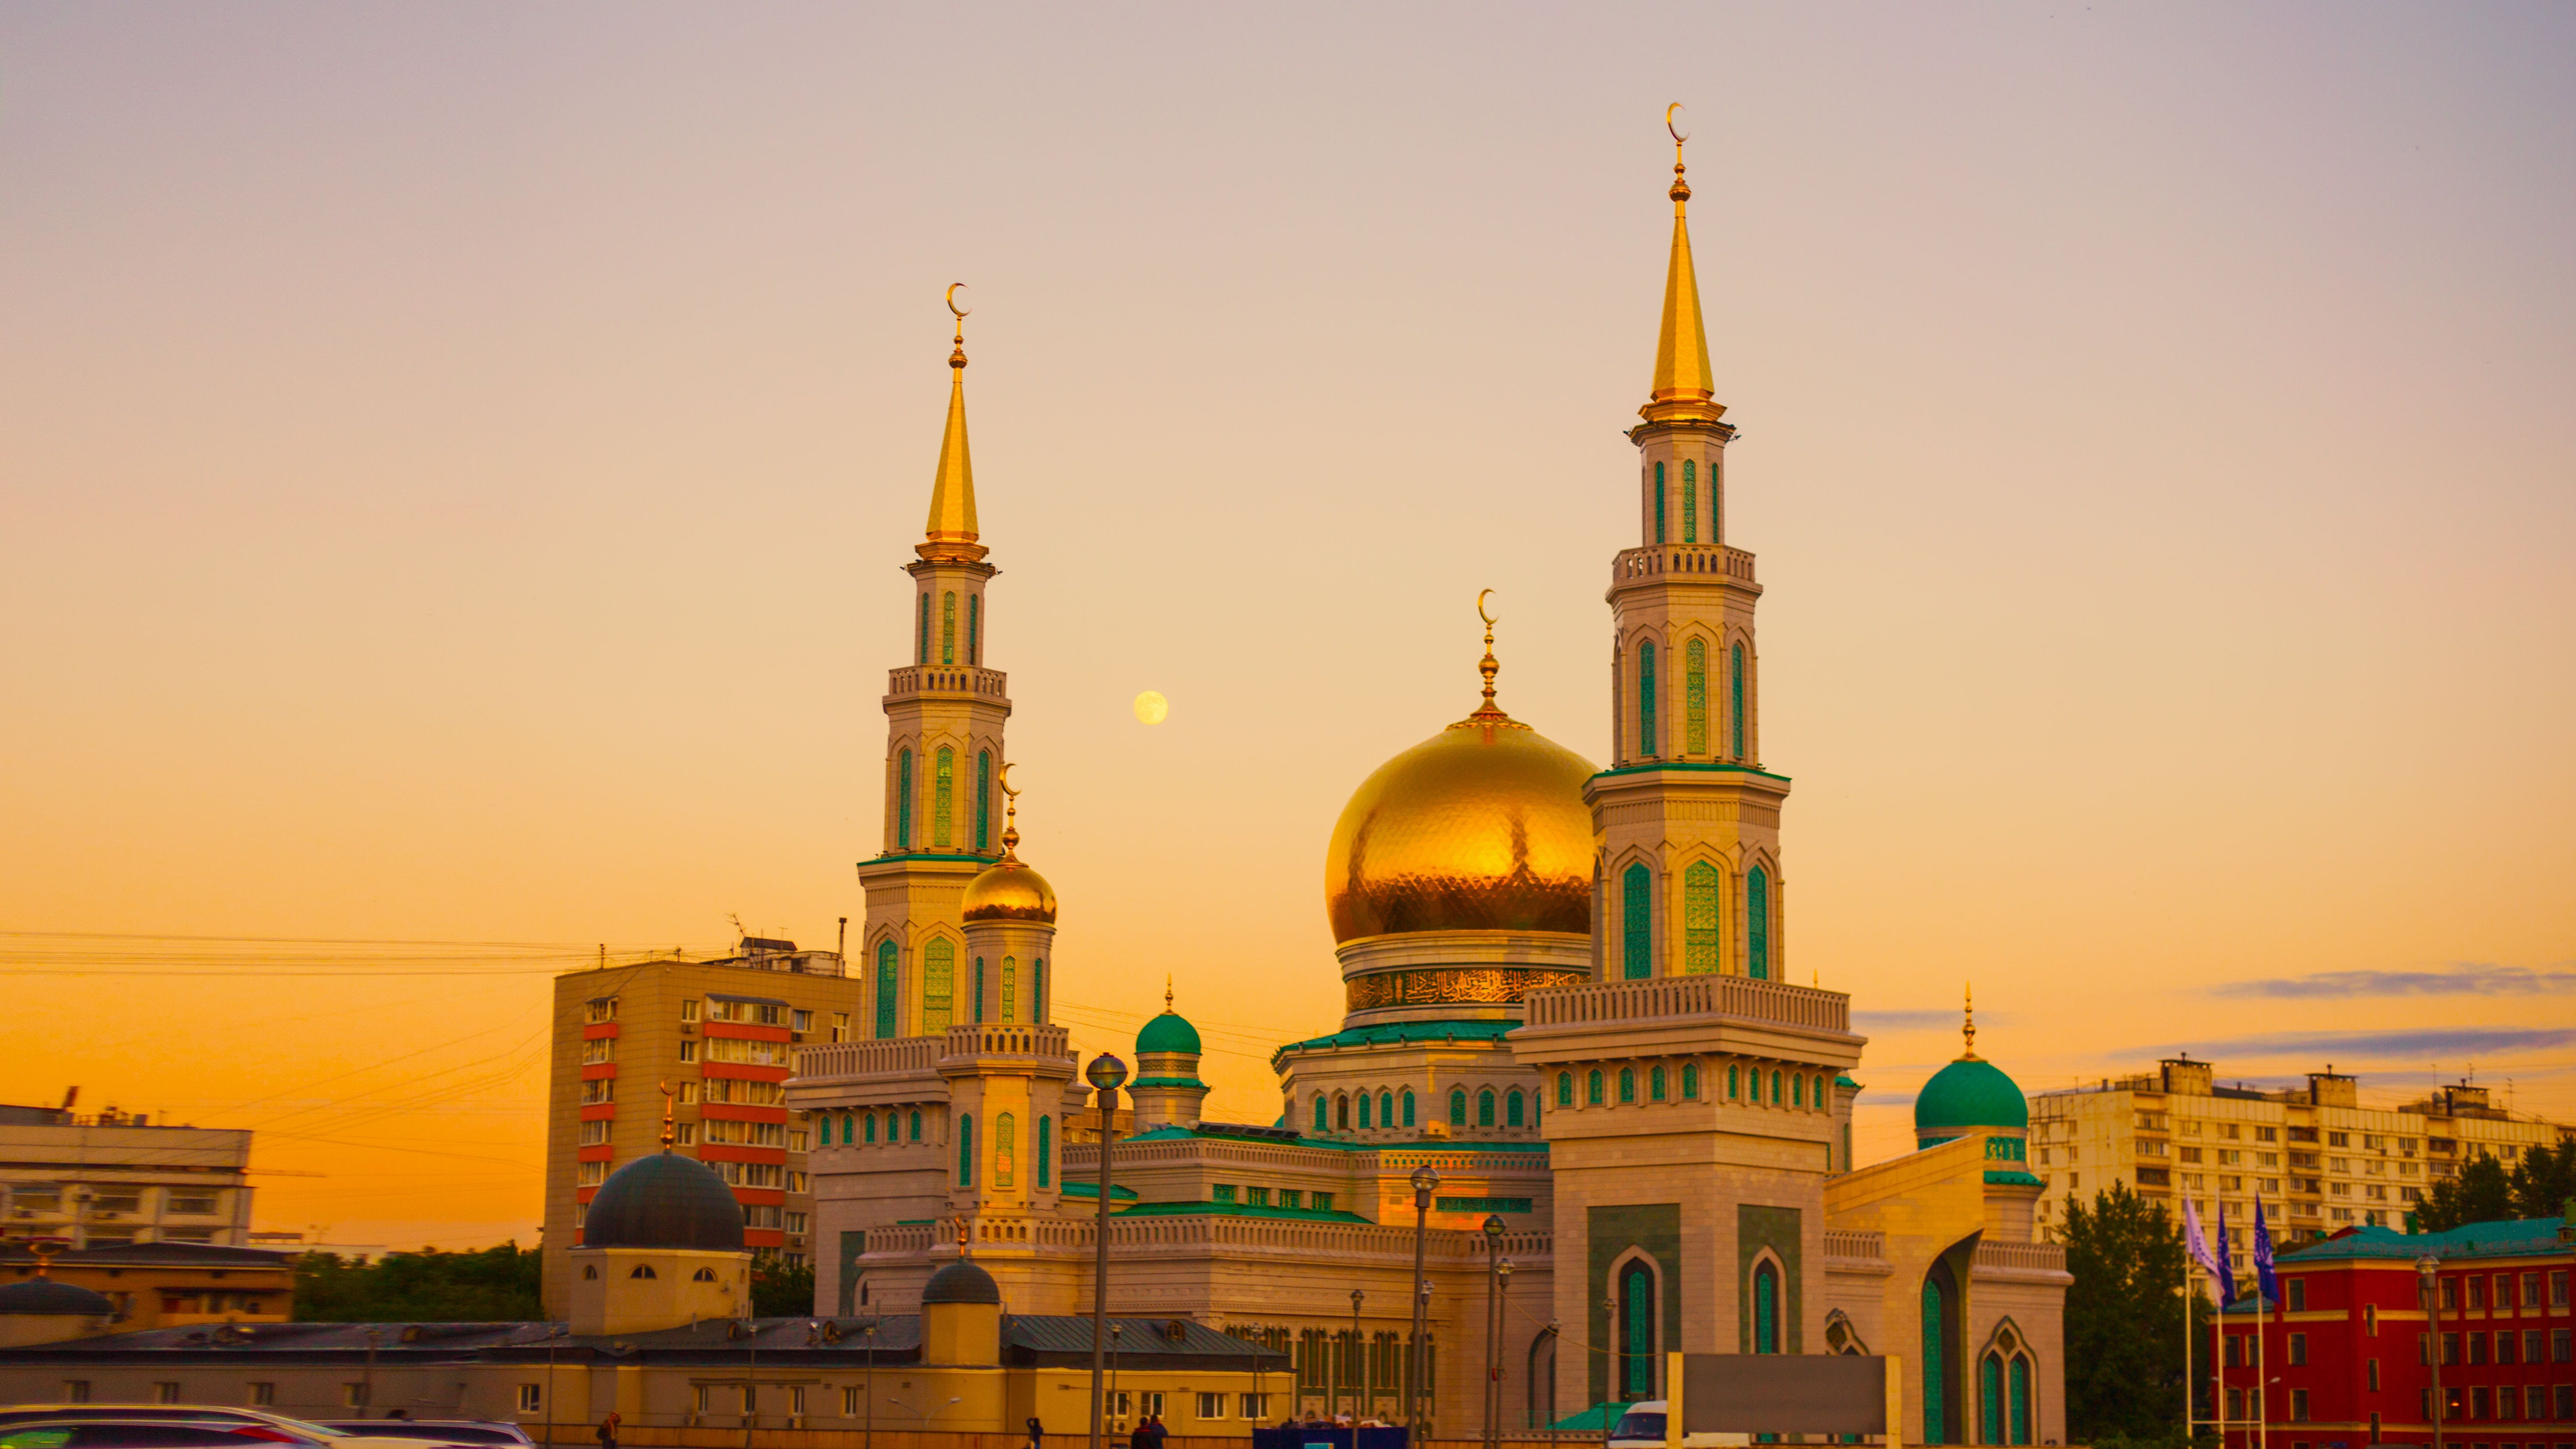 Gold Mosque during Sunset